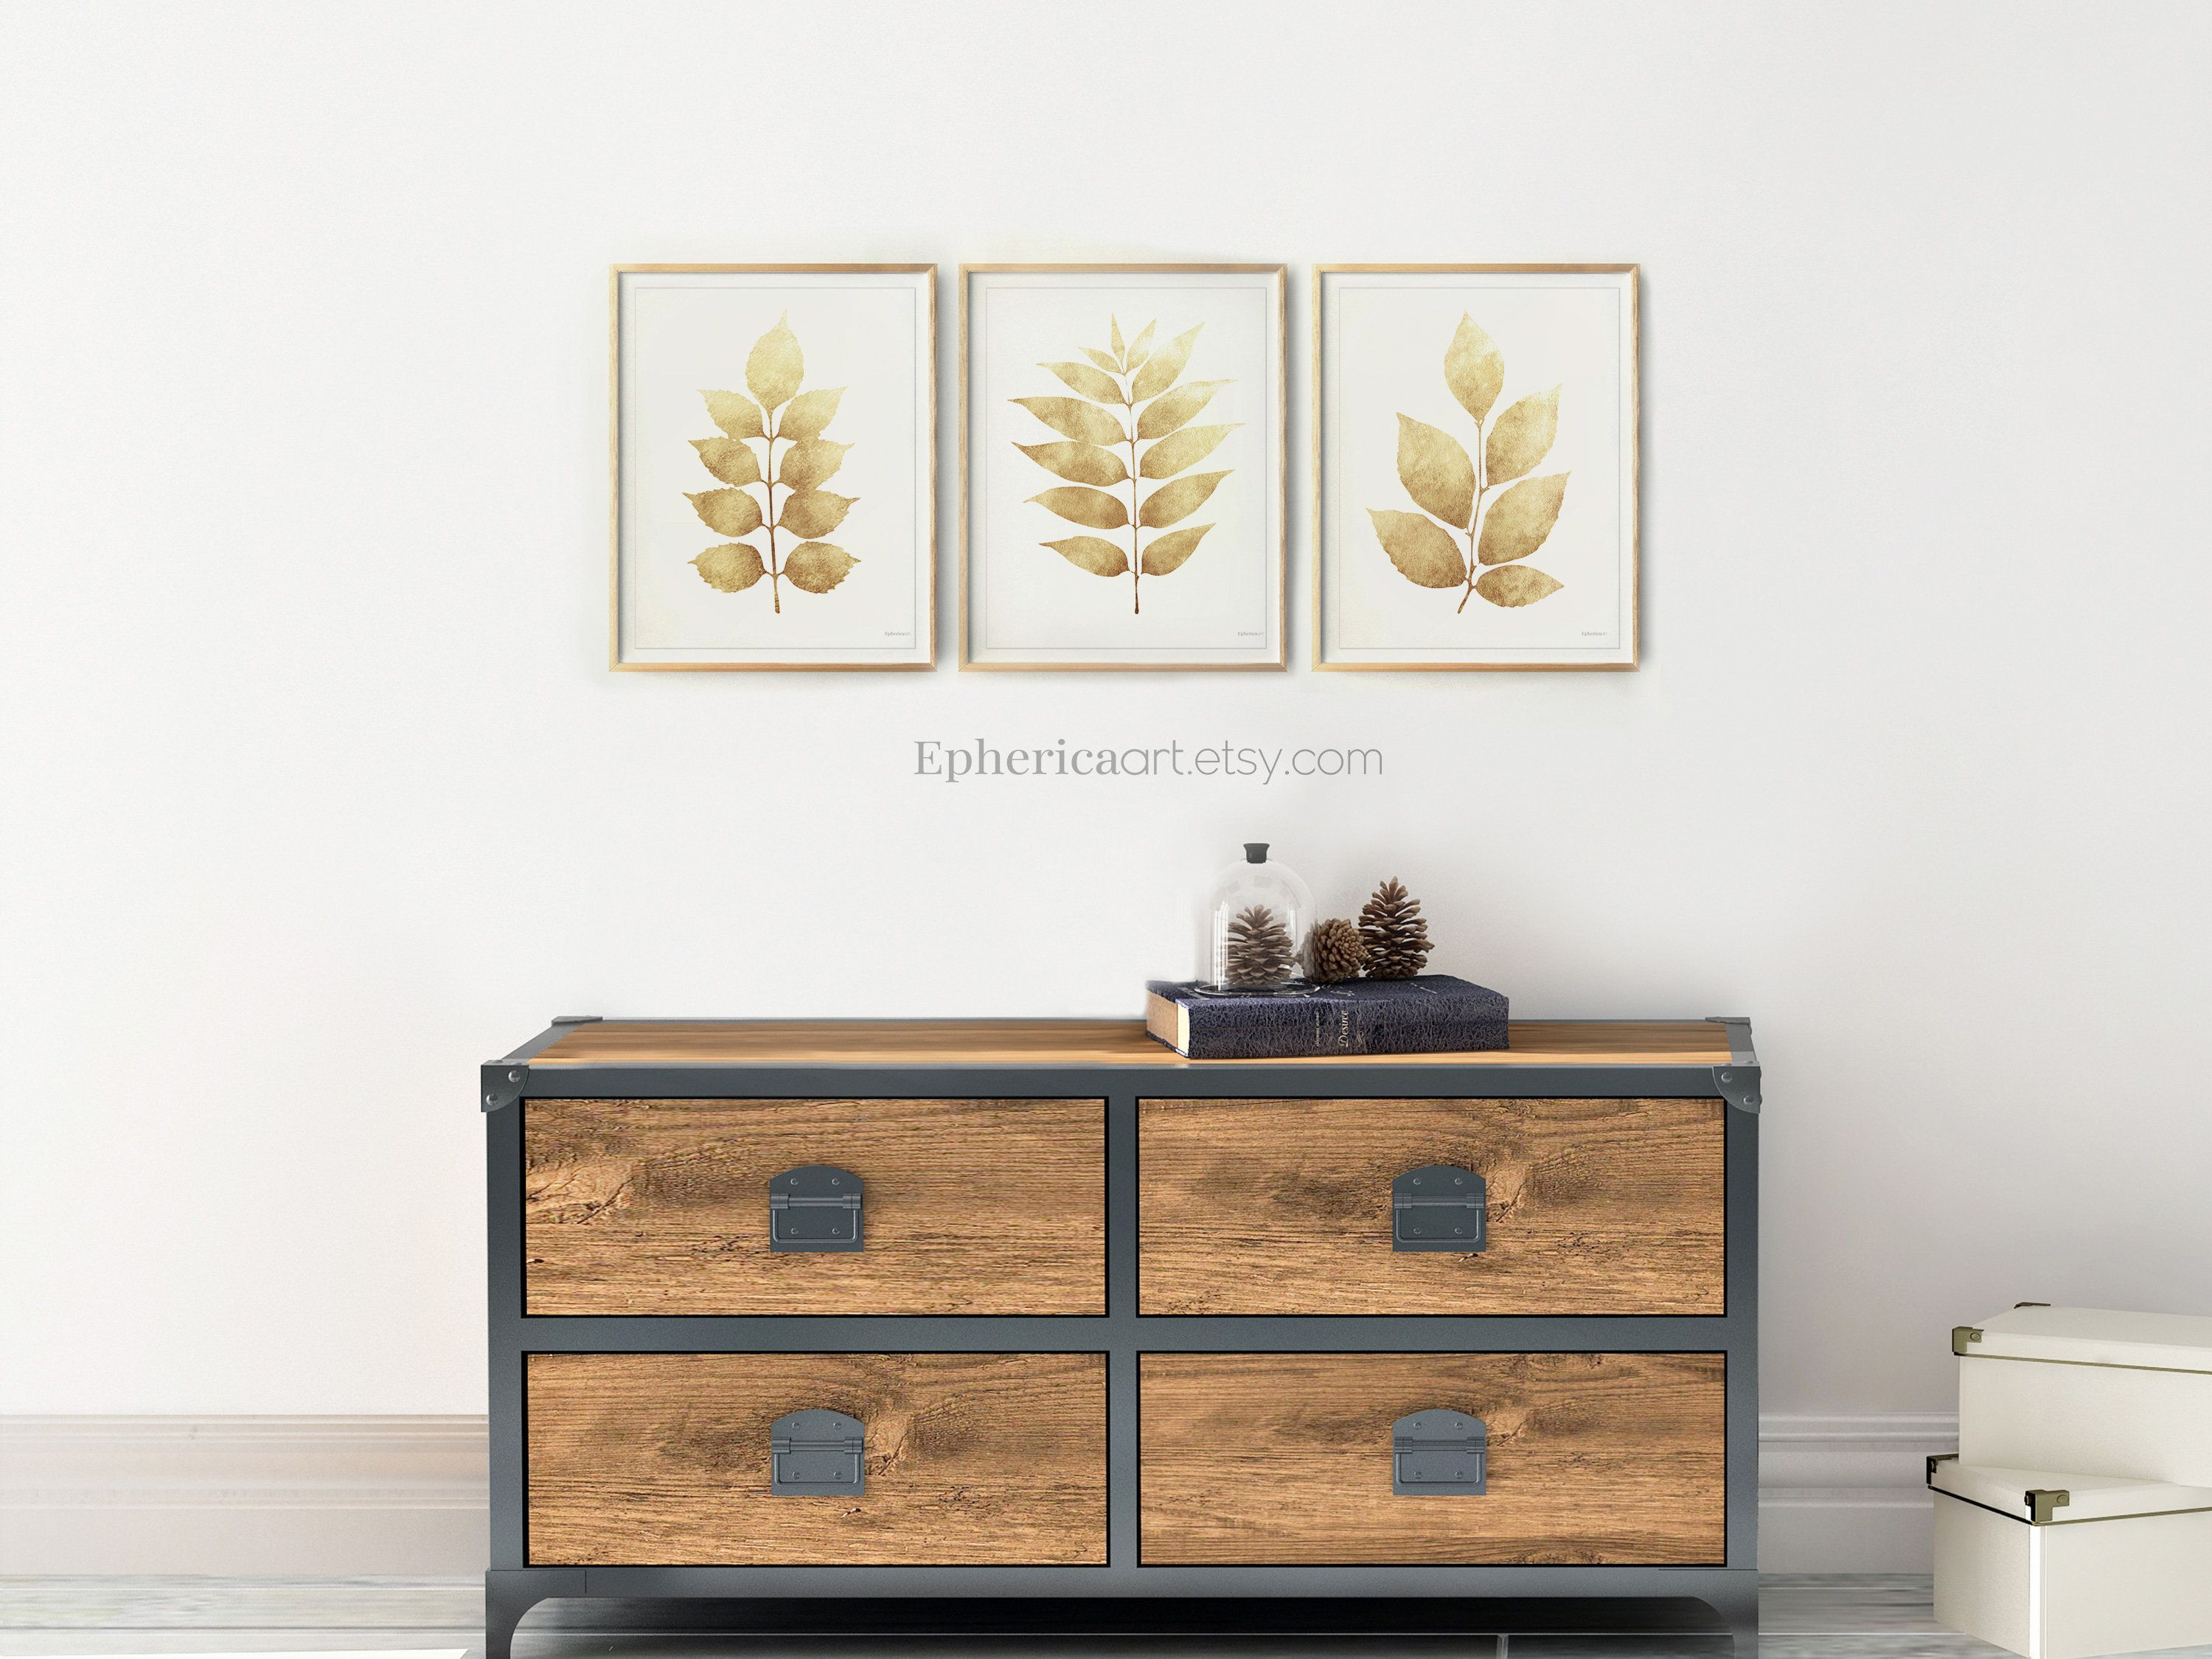 Bedroom Poster Set Of 3 Beige Leaves Trio Of Prints Above Couch Wall Art Neutral Decor Living Room Idea Farmhouse Downloadable Prints 16x20 In 2020 Room Artwork Artwork For Living Room Downloadable Art